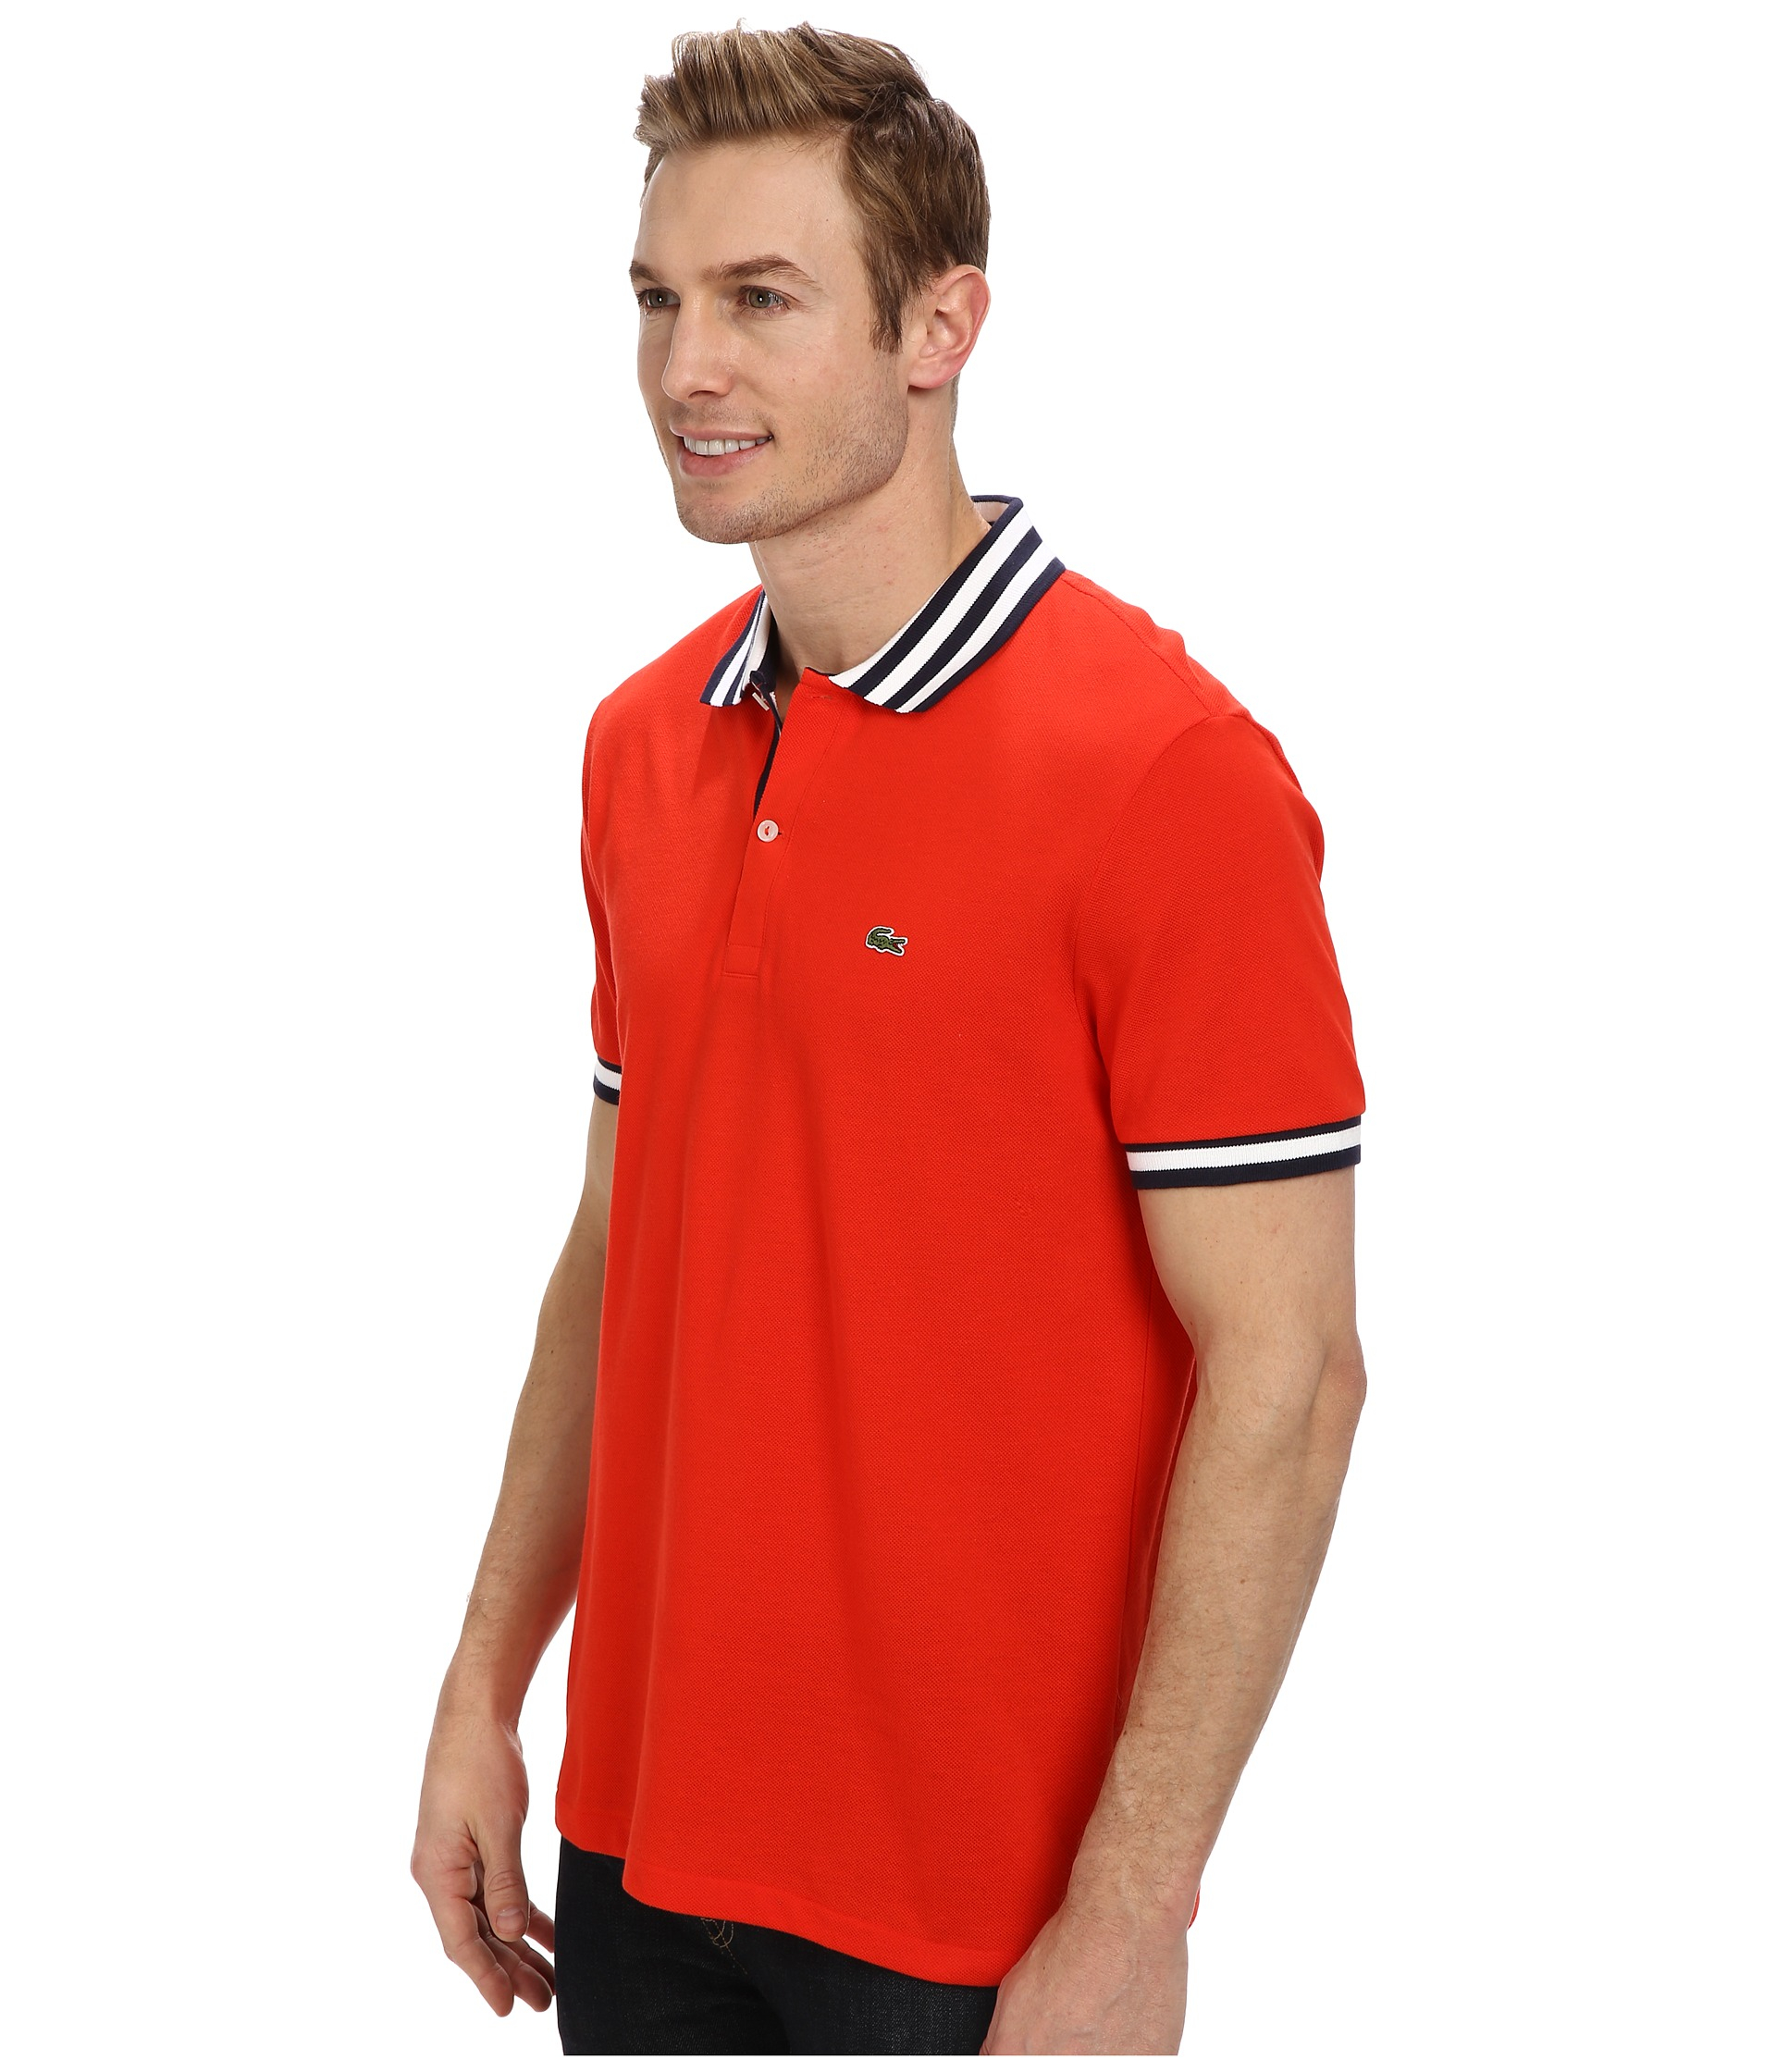 Lacoste s s stripe inset pique polo in red for men regal for Lacoste stripe pique polo shirt